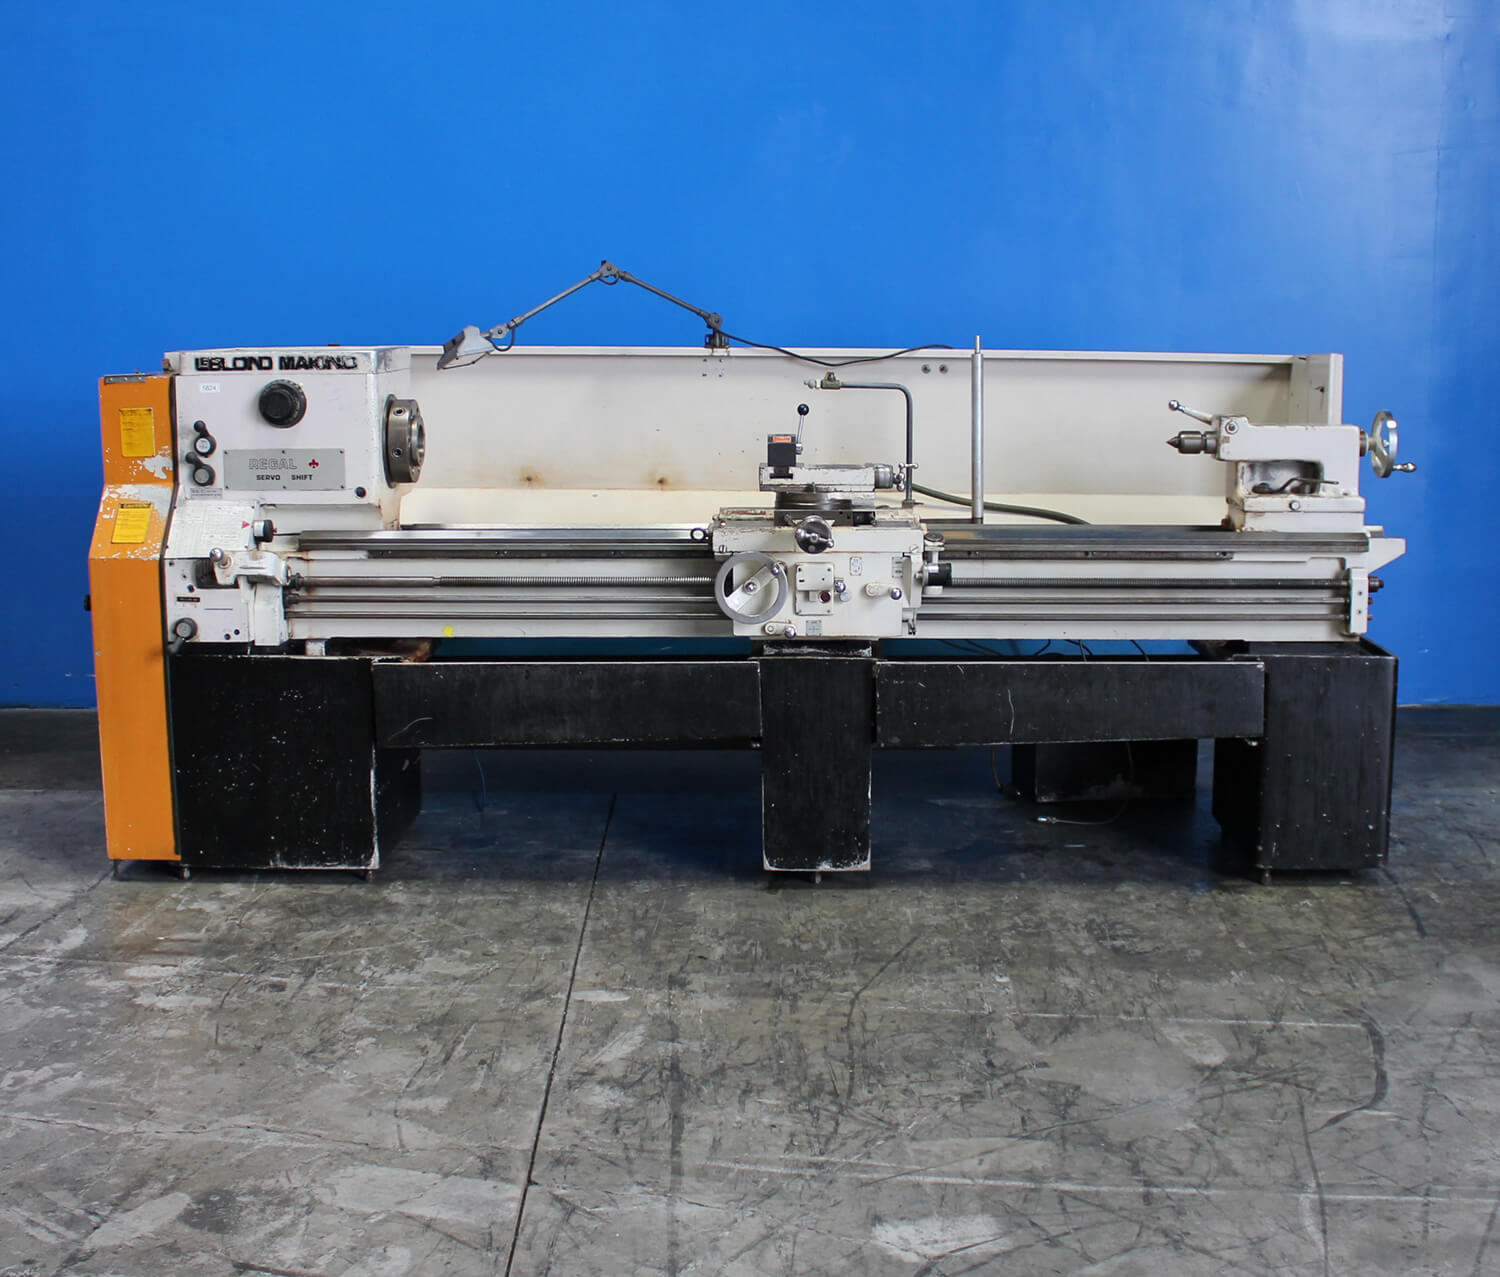 Used Lathes Manual For Sale Leblond Makino Engine Lathe 19 Wiring Schematic Product Images